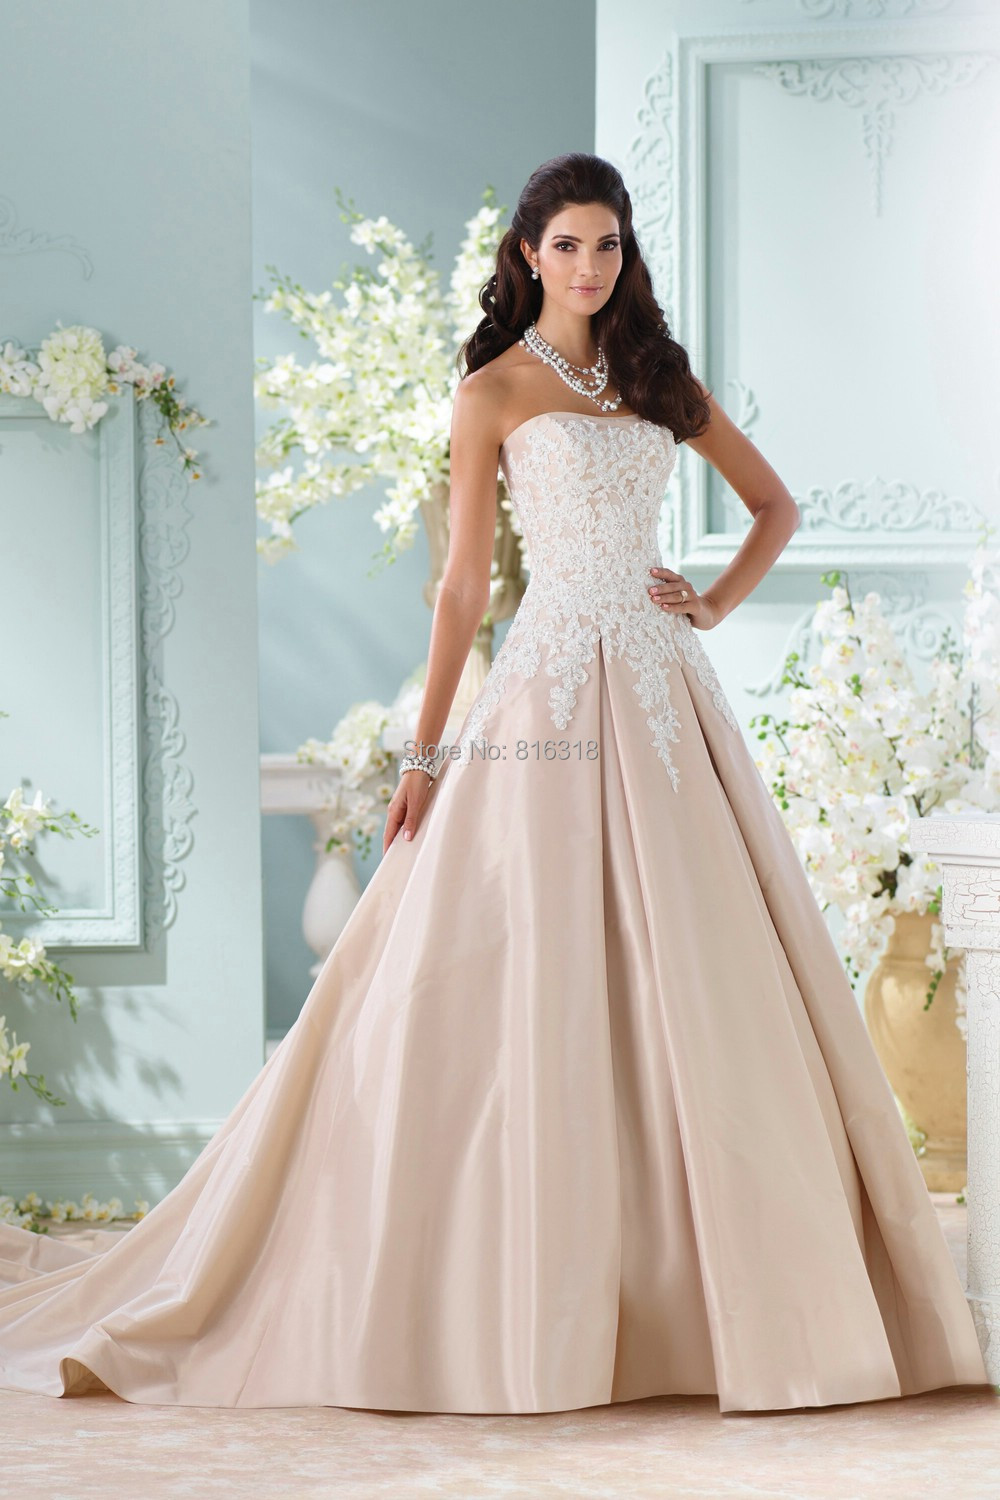 Champagne Satin Plus Size Ball Gown Wedding Dresses Applique Lace ...